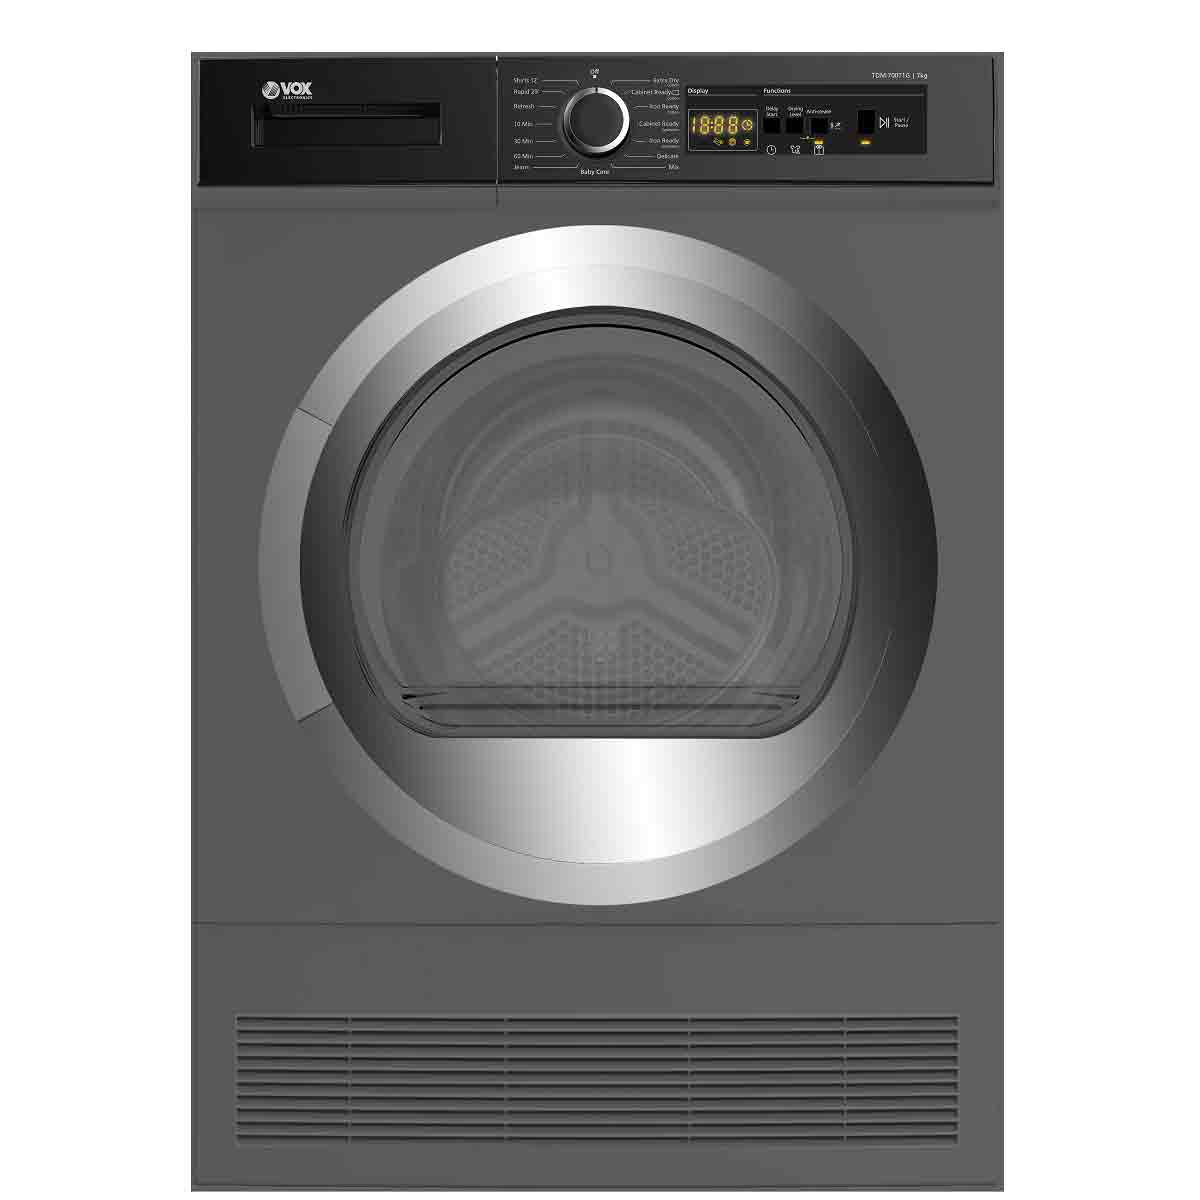 Tumble dryer TDM-700T1G